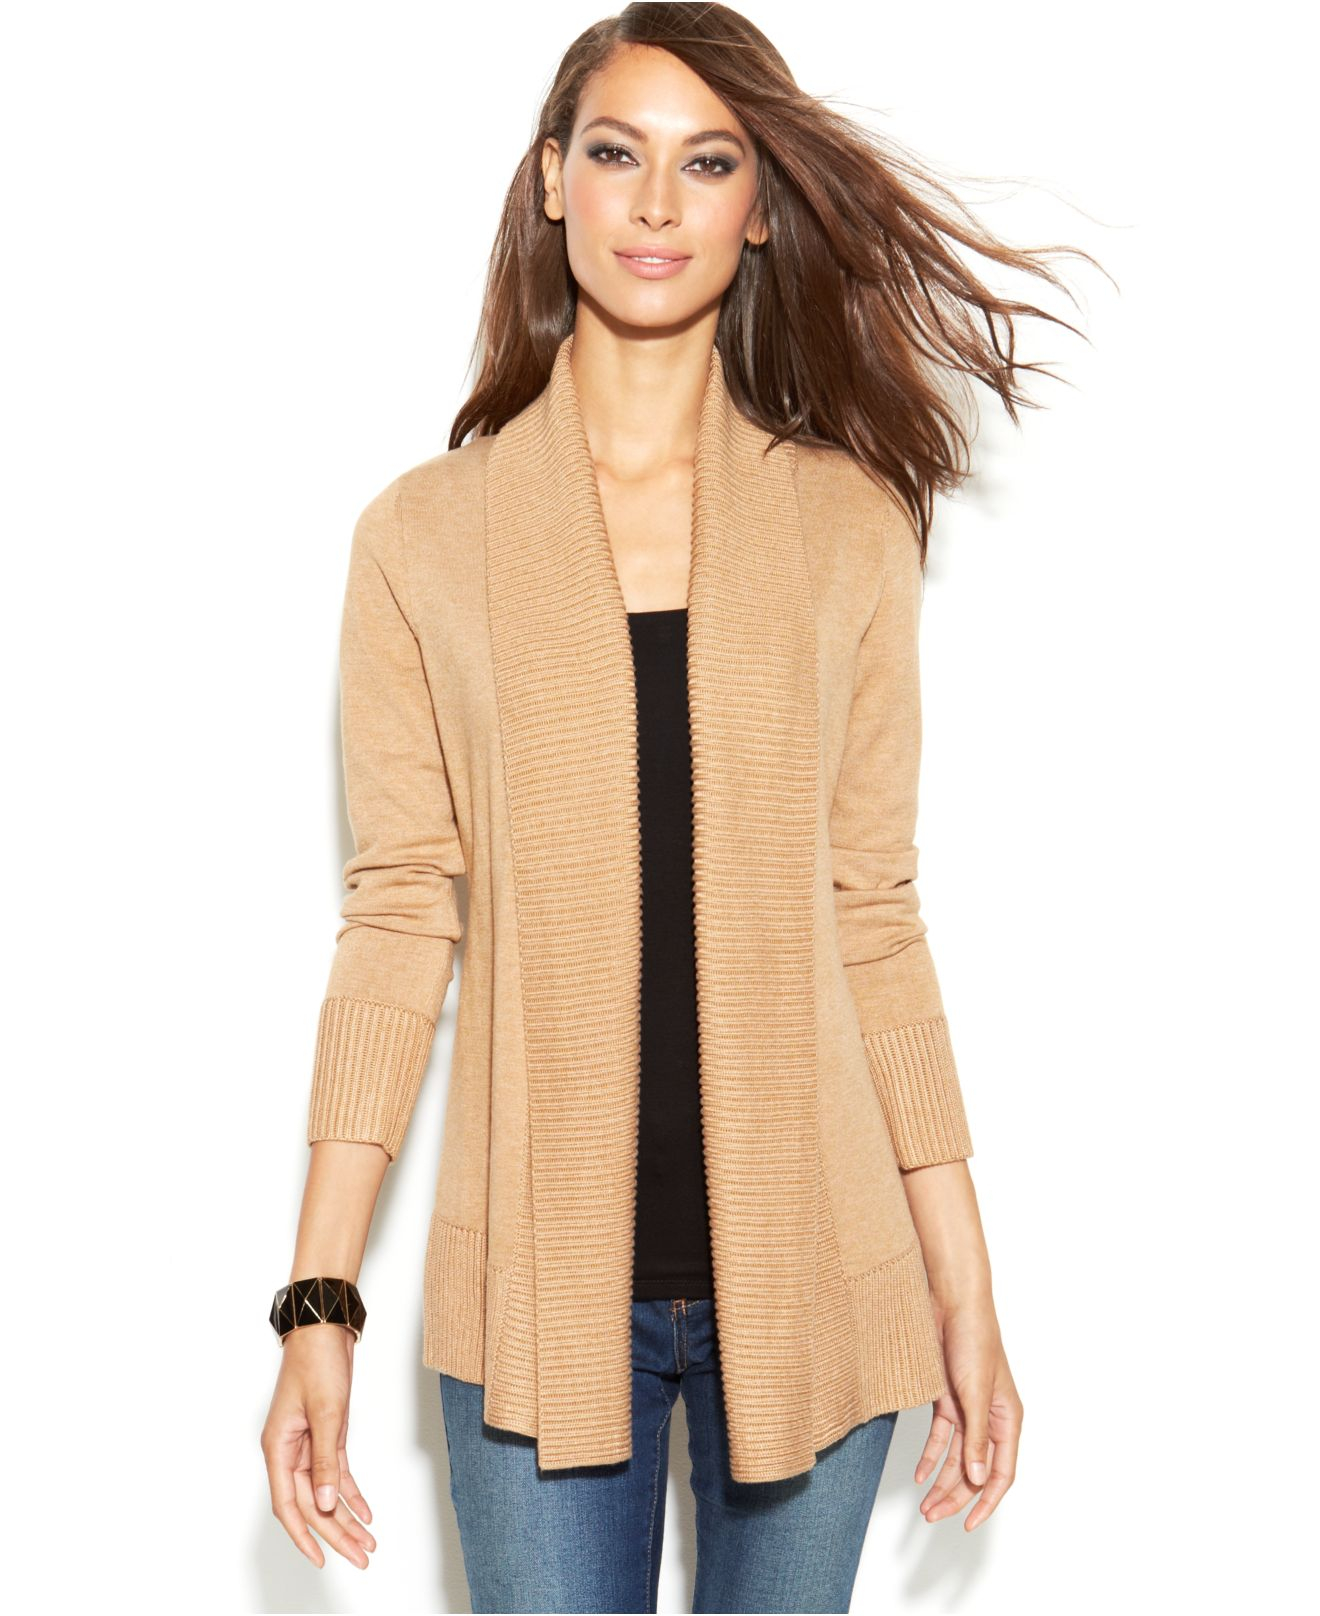 Knitting Pattern Open Front Cardigan : Inc international concepts Ribbed-Knit Open-Front Cardigan in Natural Lyst